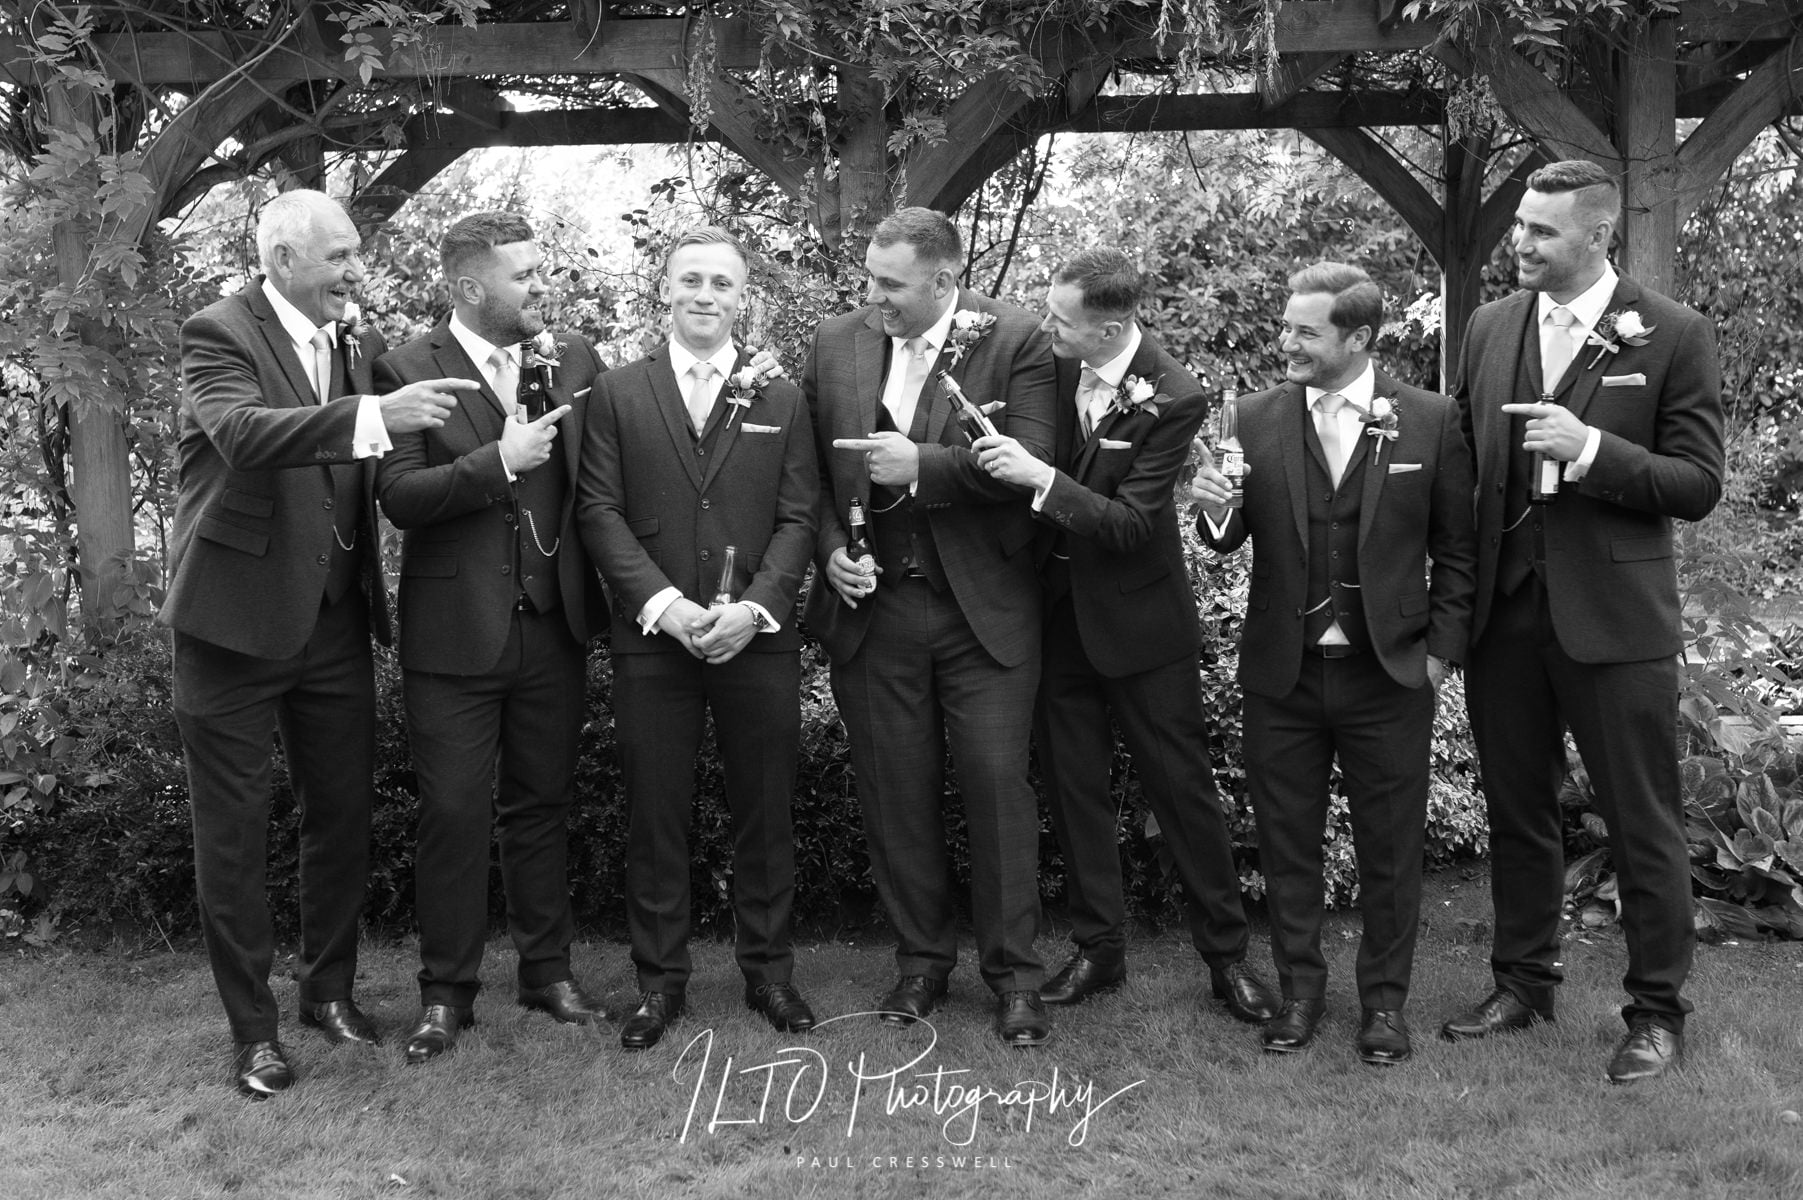 funny wedding photographer yorkshire ILTO photography